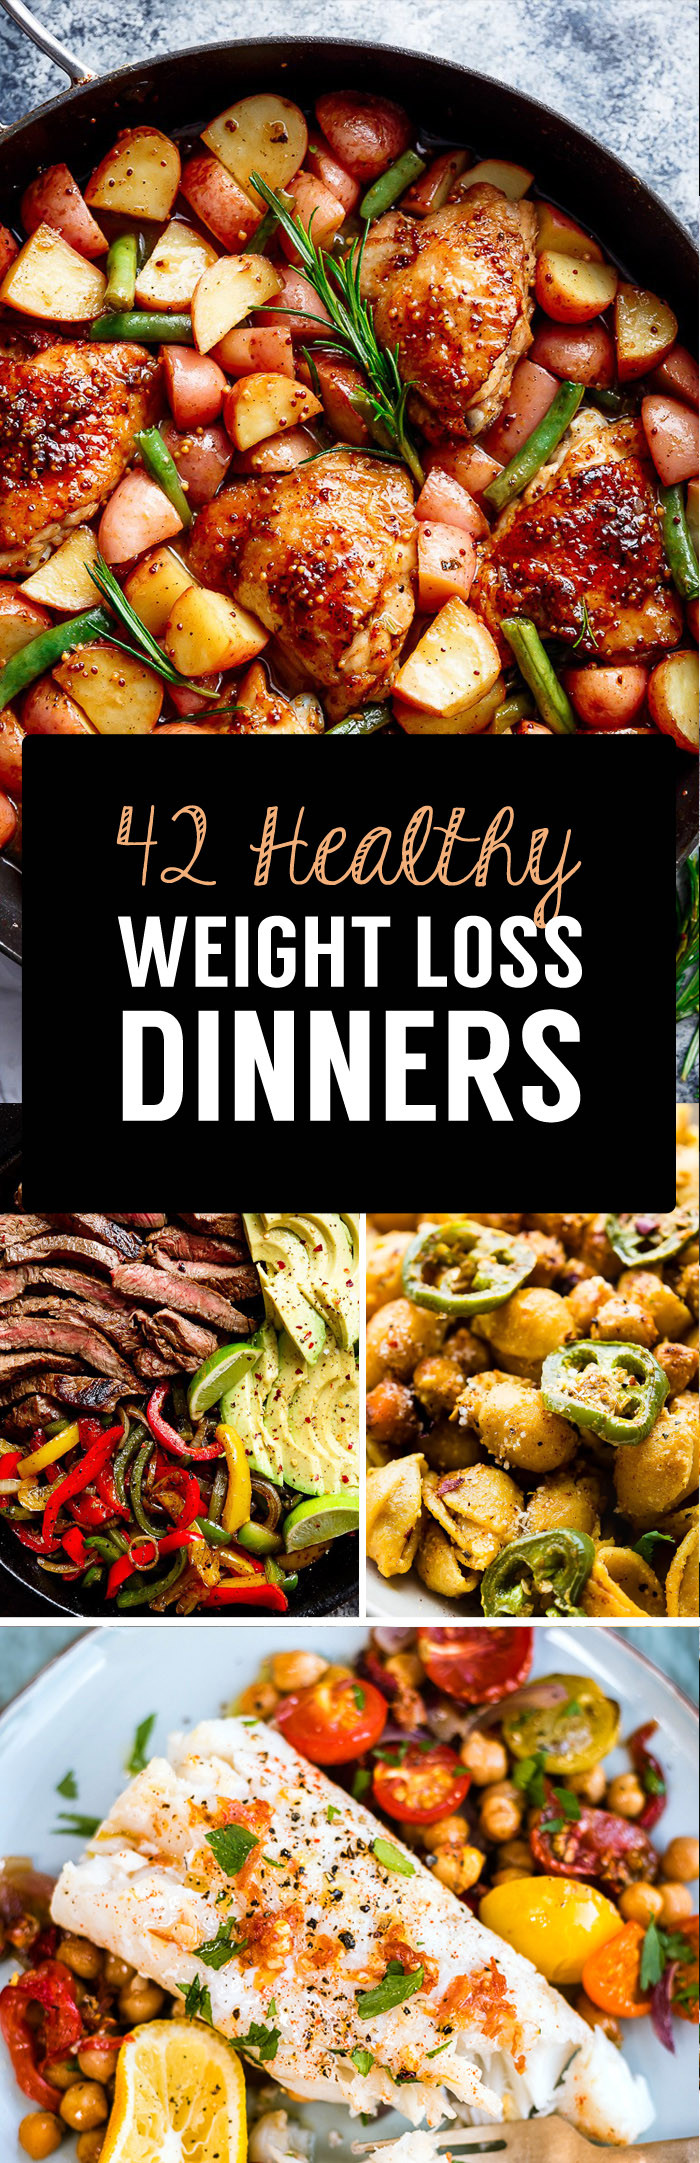 Healthy Dinner Recipes For Weight Loss  42 Weight Loss Dinner Recipes That Will Help You Shrink